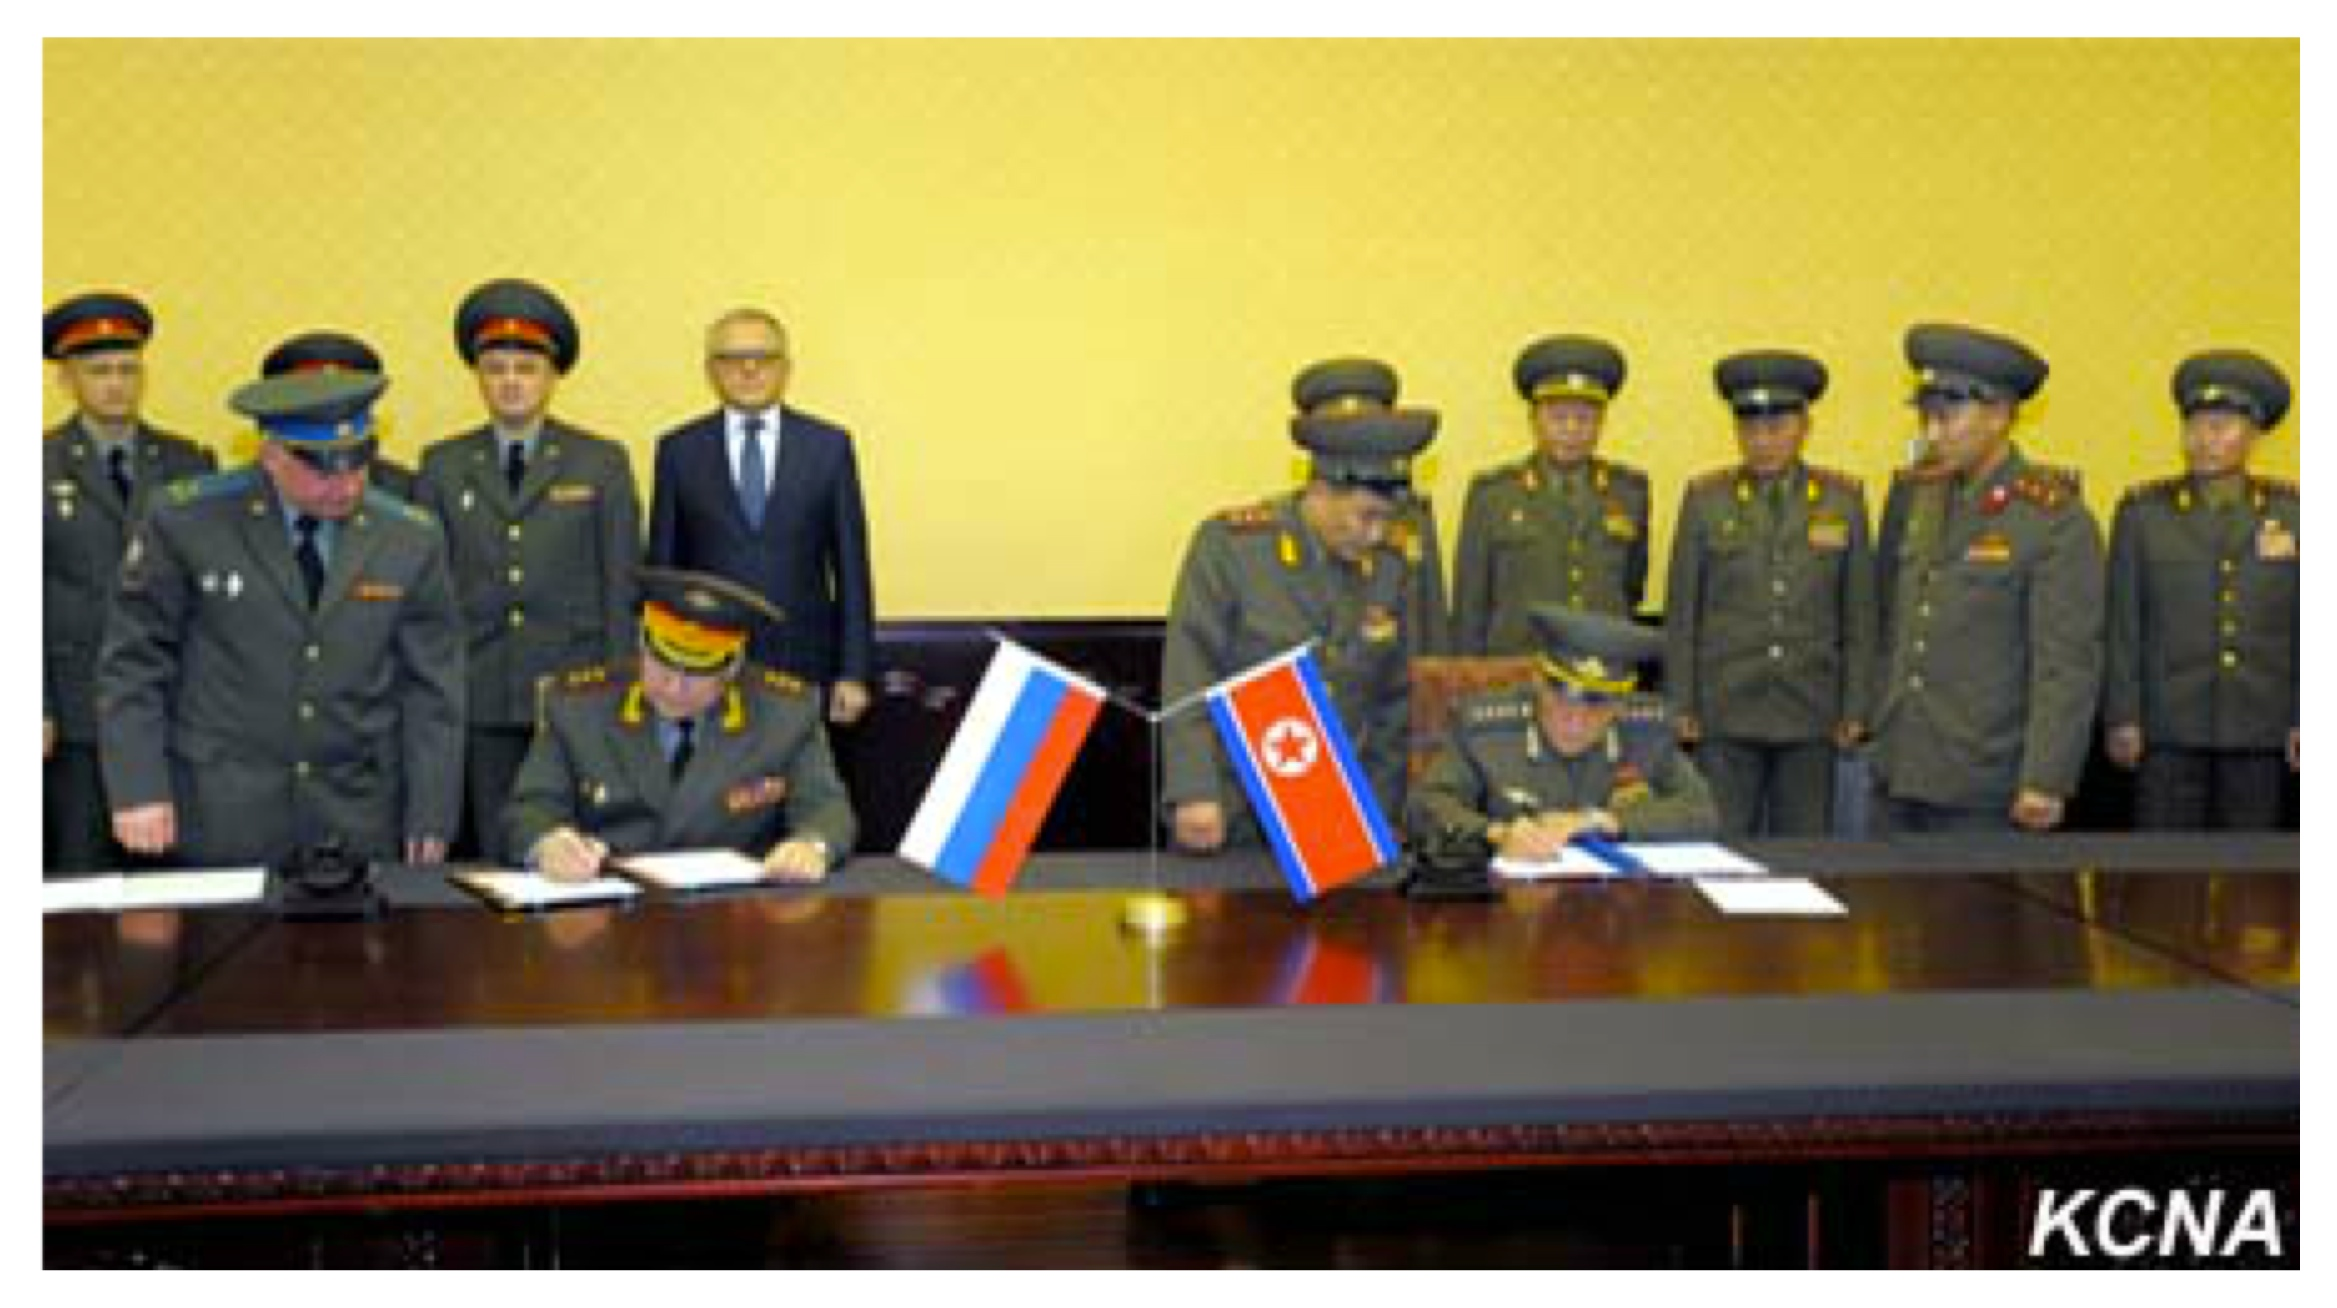 "Russian Federation Armed Forces 1st Vice Chief of the General Staff Col. Gen. Nikolai Bogdanovski (left) and Vice Chief of the KPA General Staff Col. Gen. O Kum Chol (right) sign an agreement on what Russian media said is ""the prevention of dangerous military activity"" (Photo: KCNA)."